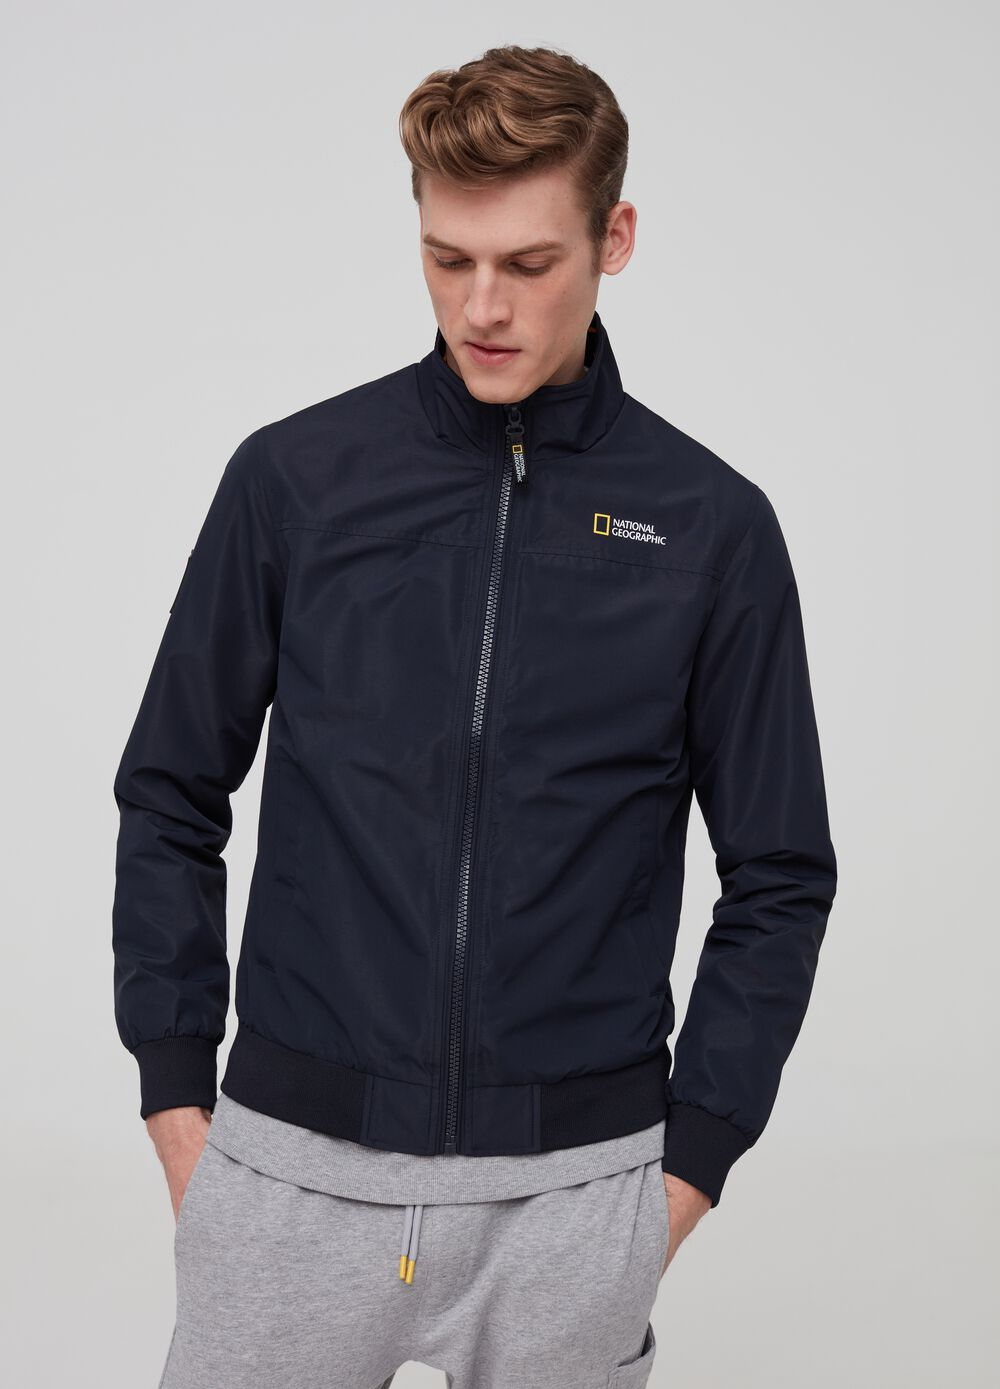 Lightweight National Geographic jacket